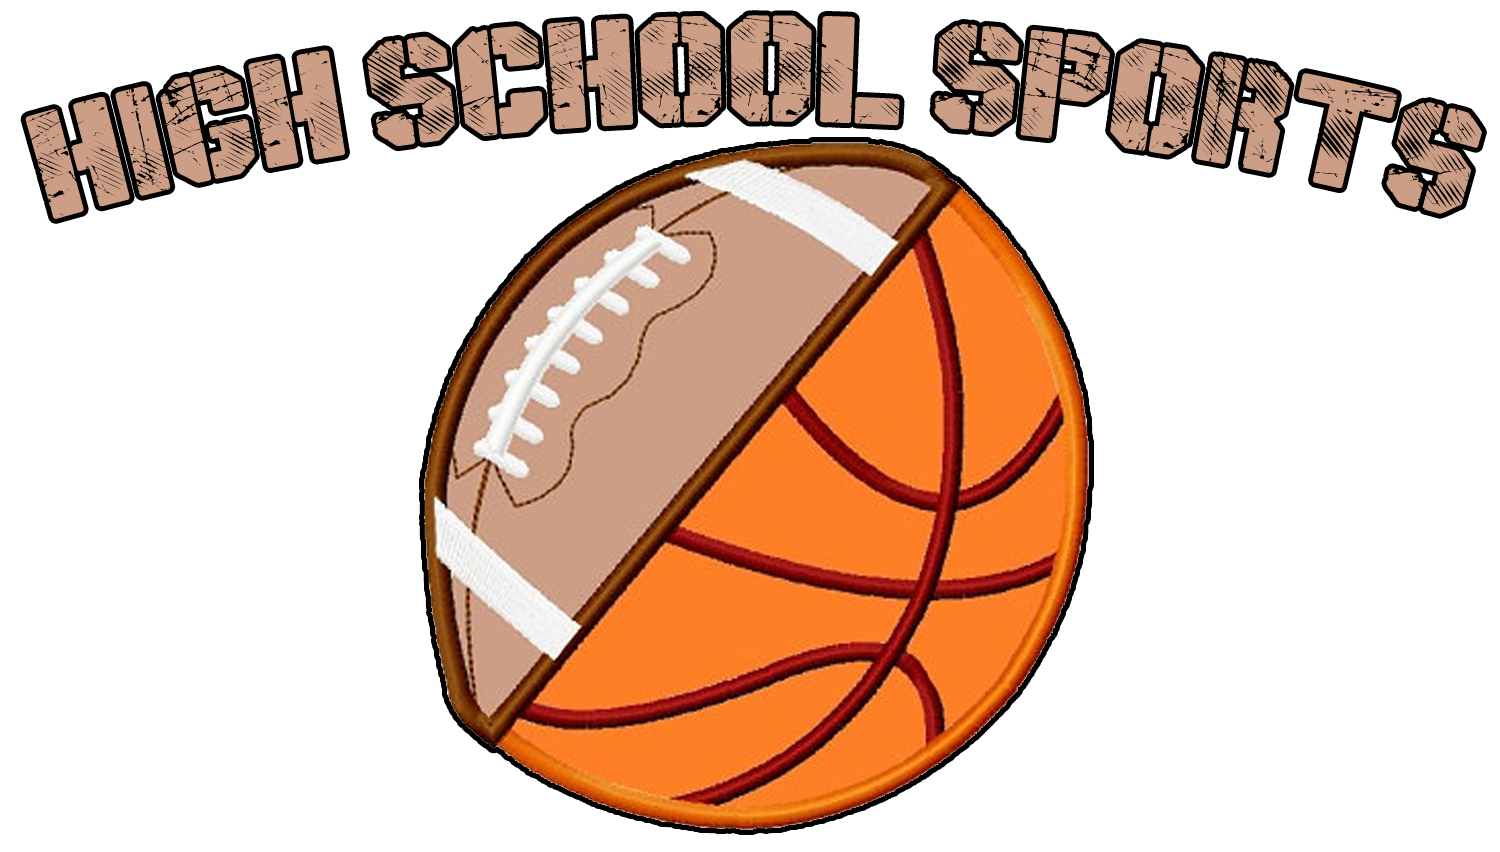 High school basketball clipart png royalty free library High School Sports - The Gospel Station png royalty free library